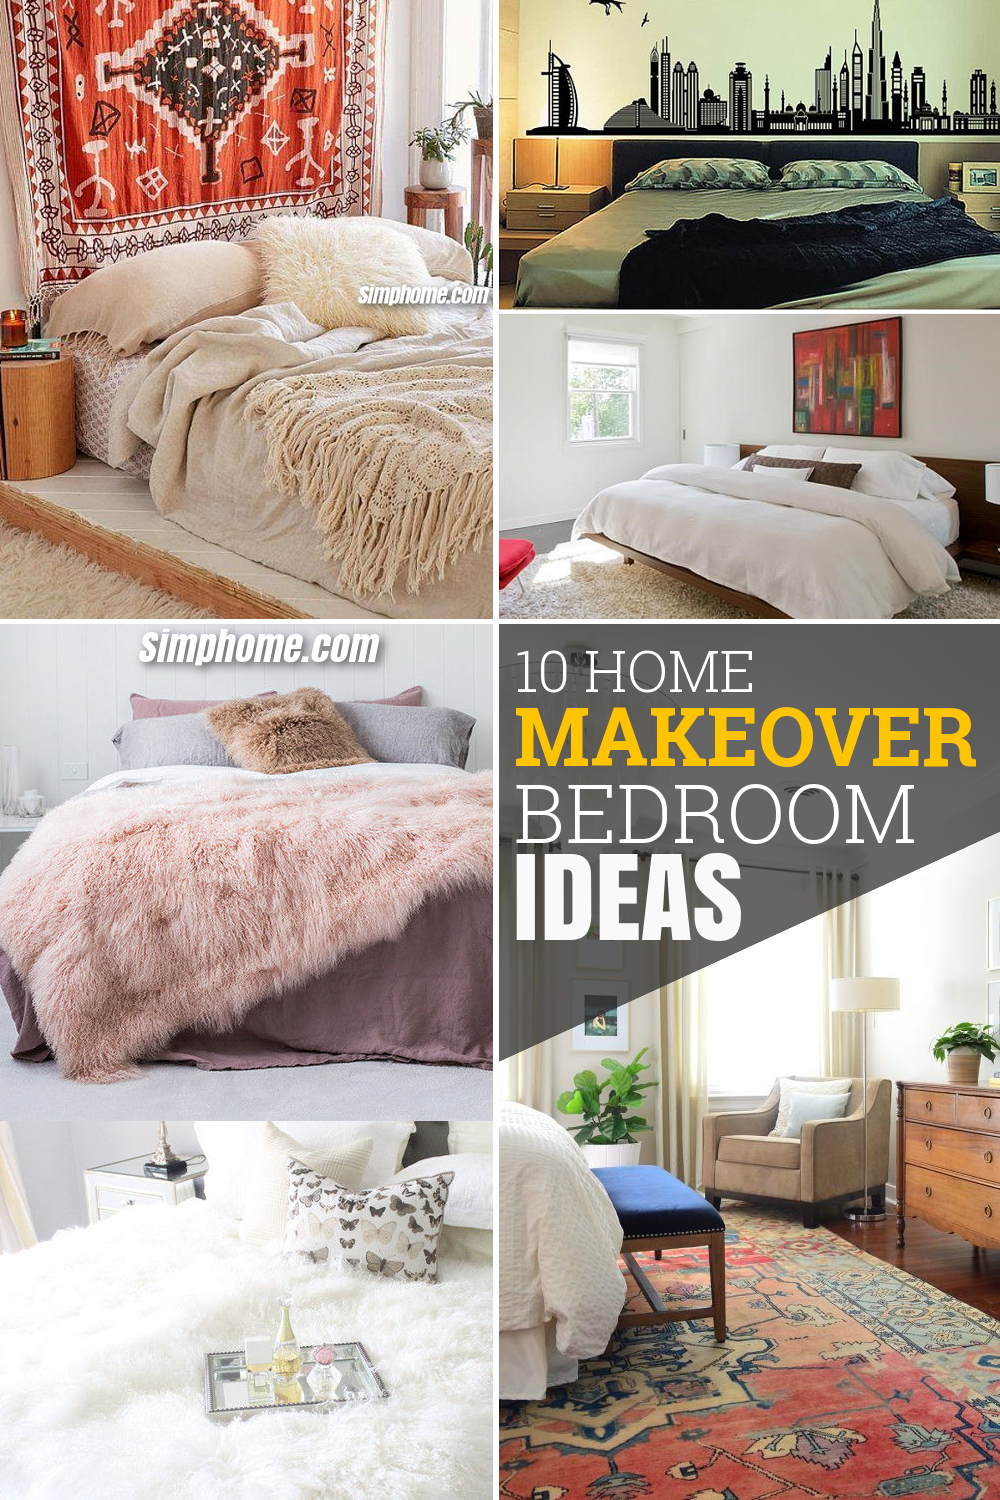 10 Home Makeover Bedroom Ideas via Simphome com Pintrerest Featured image